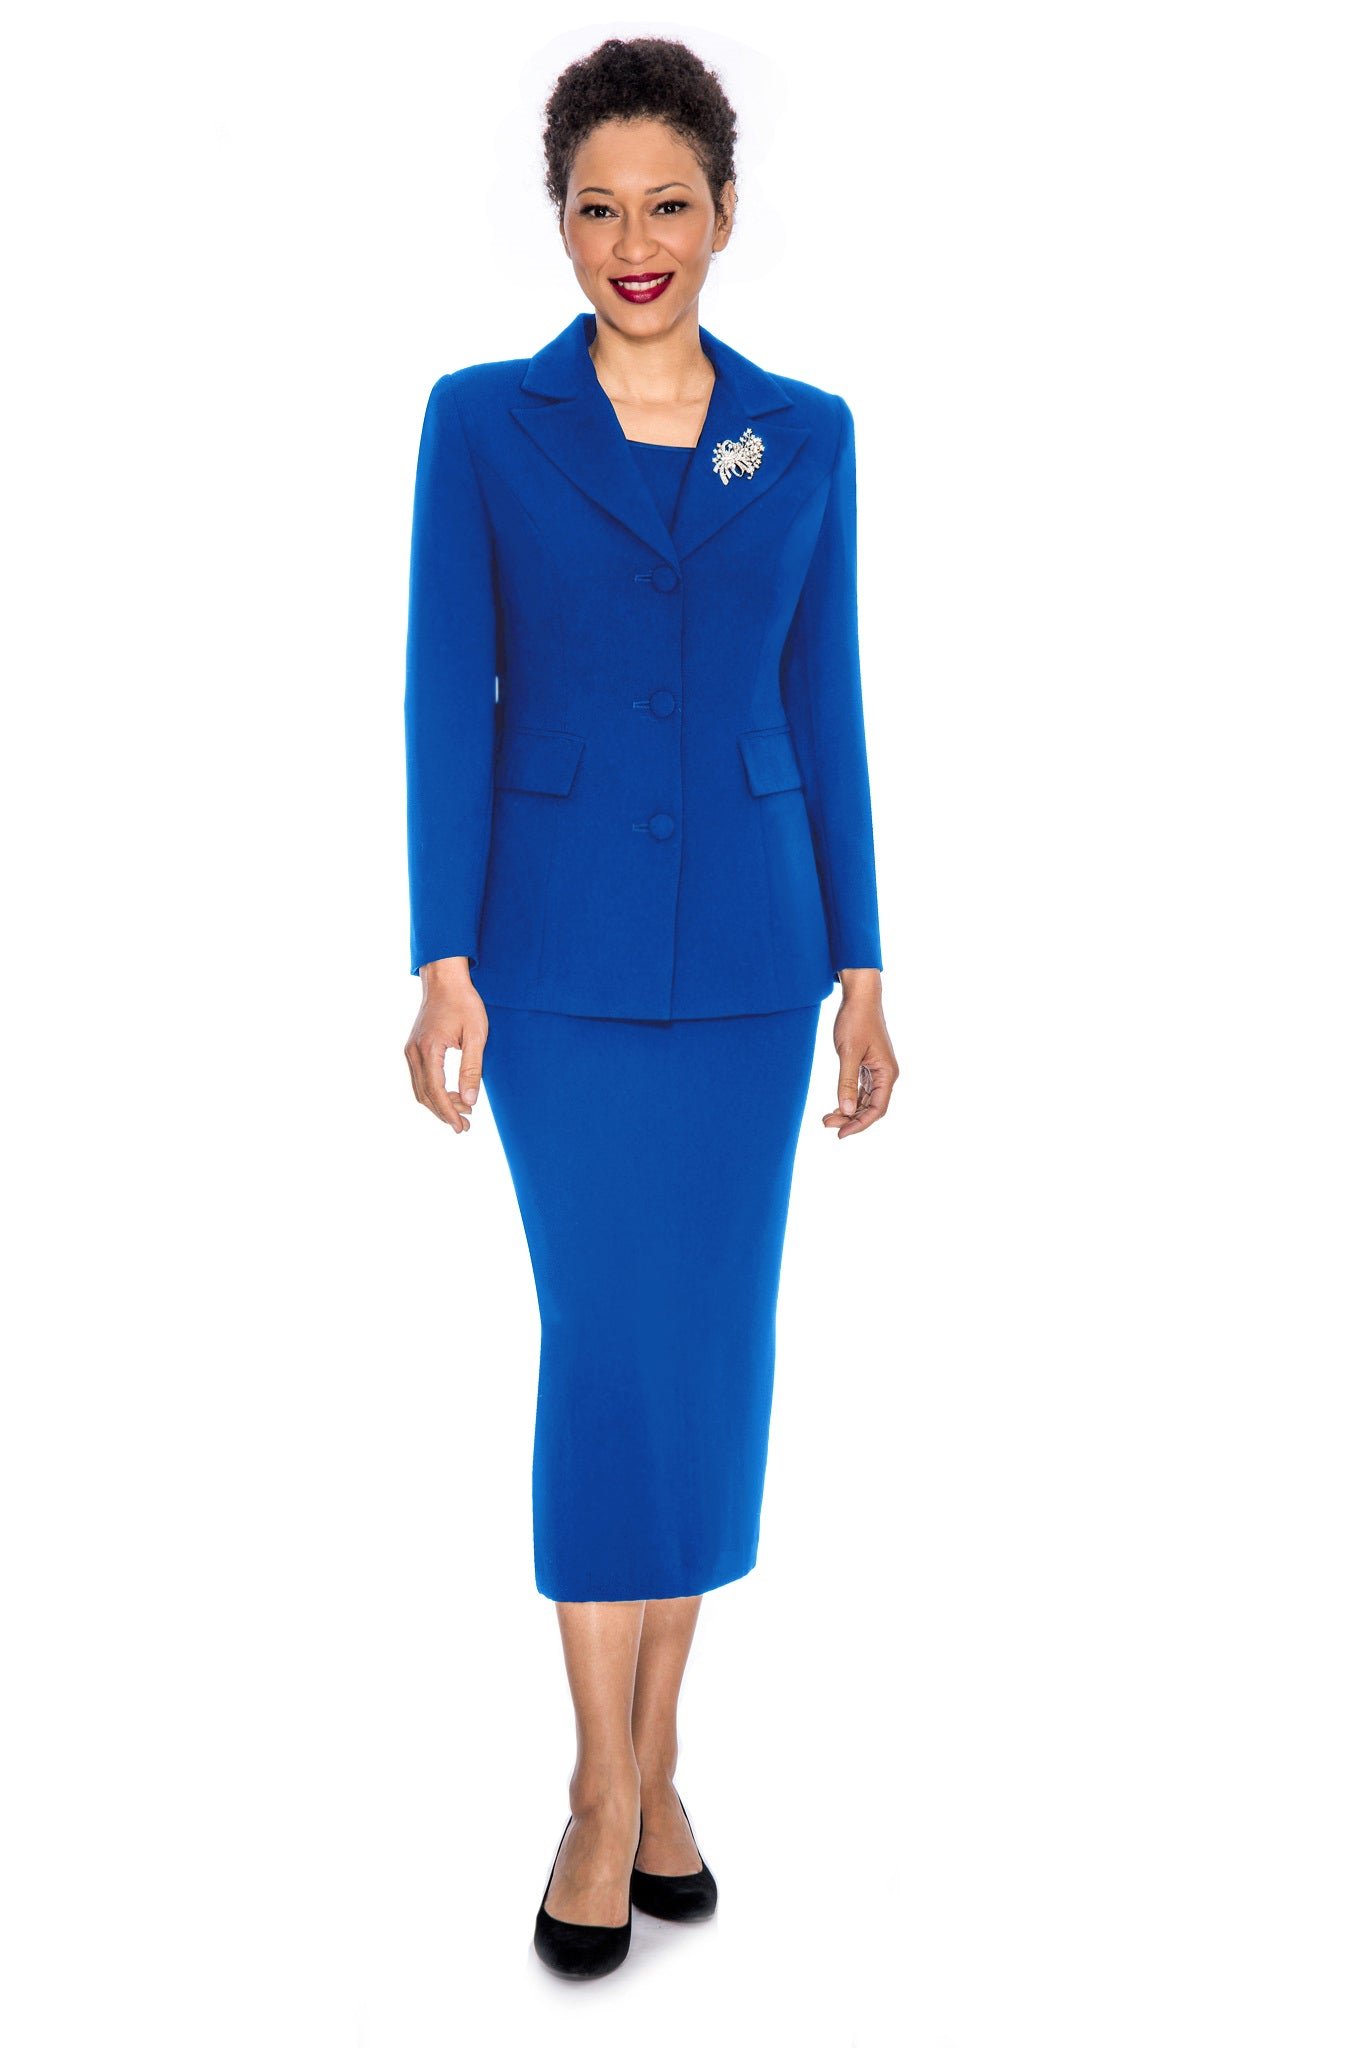 Giovanna Usher Suit 0655-Royal - Church Suits For Less